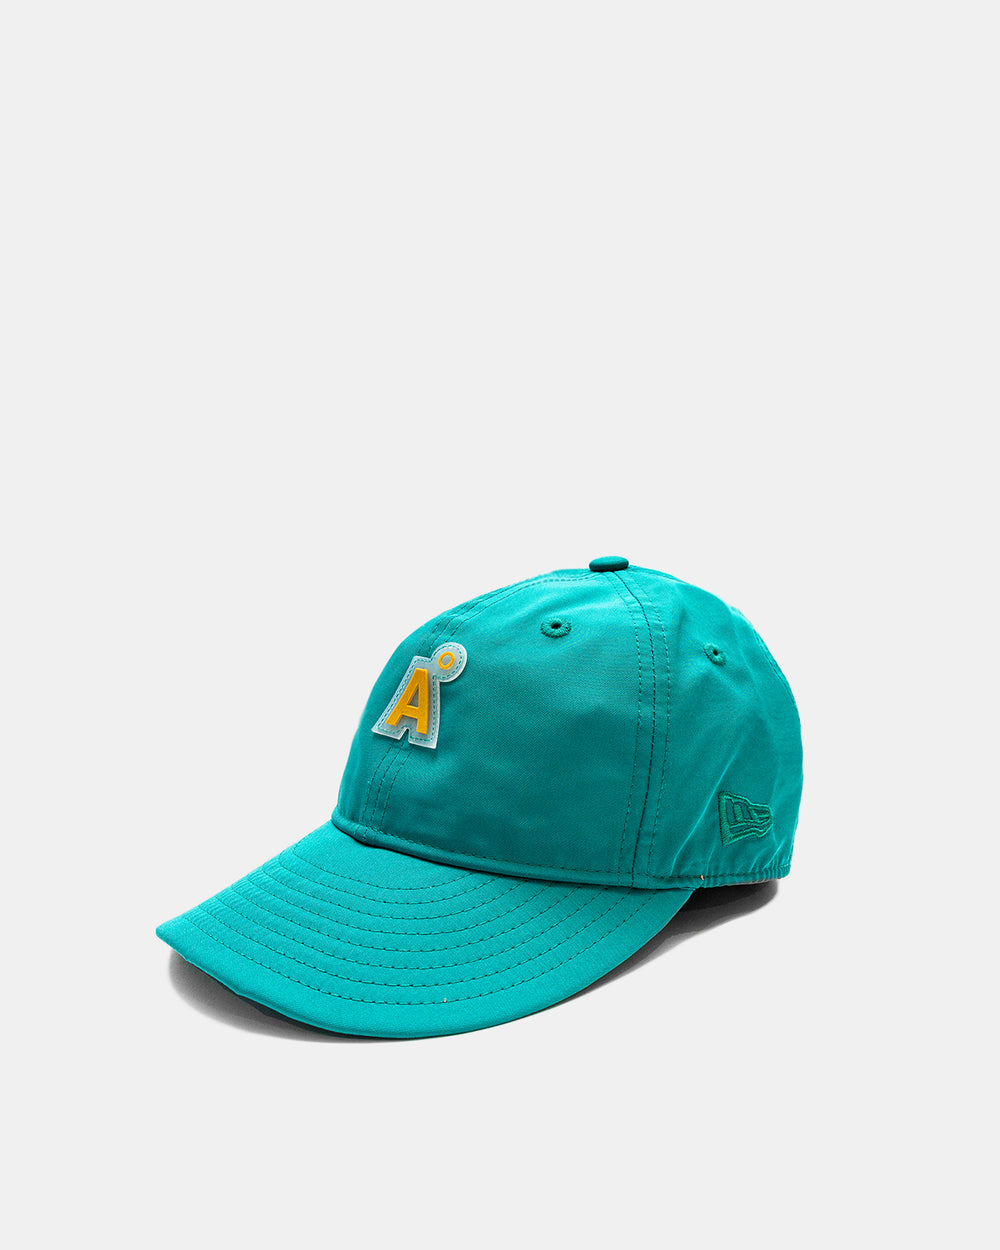 New Era - Atlas° by UBIQ Retro Crown 3 Fit Hat (Atlas° Green)